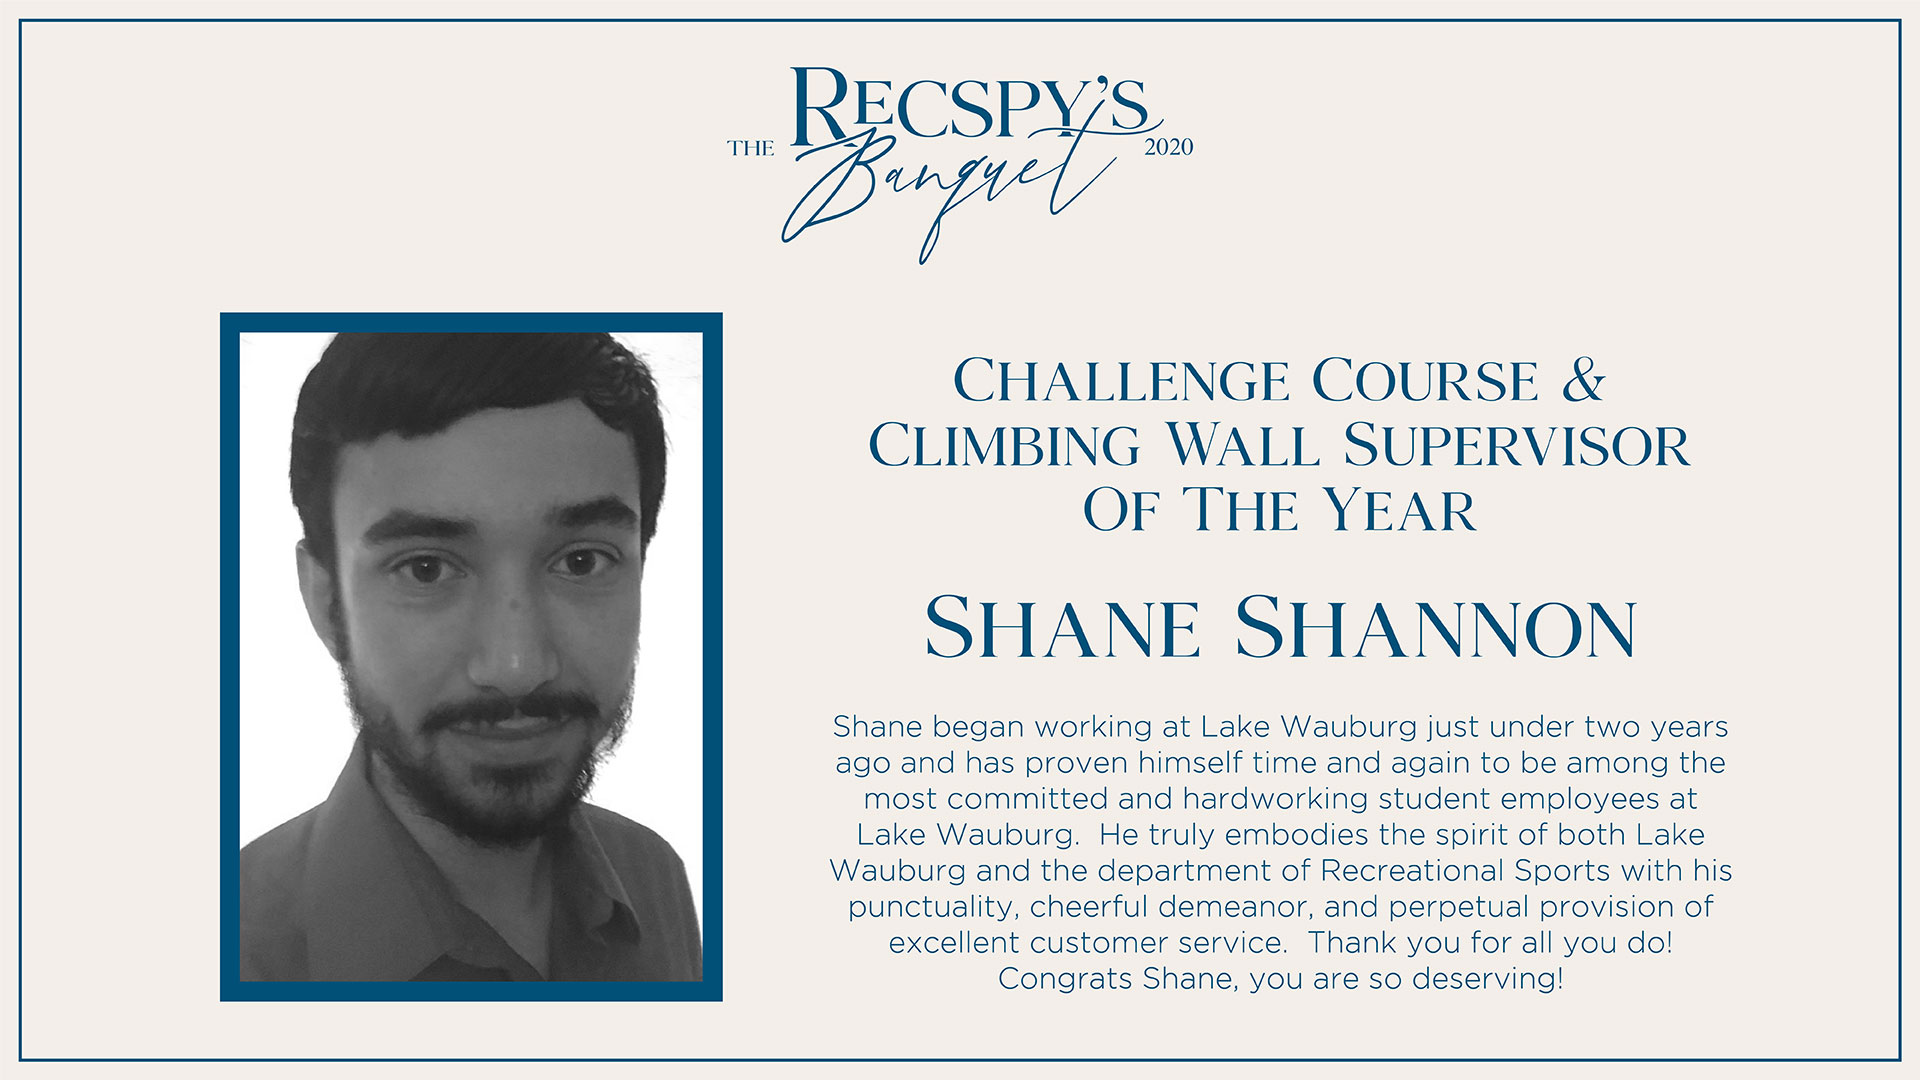 Shane Shannon: Challenge Course and Climbing Wall Supervisor of the Year